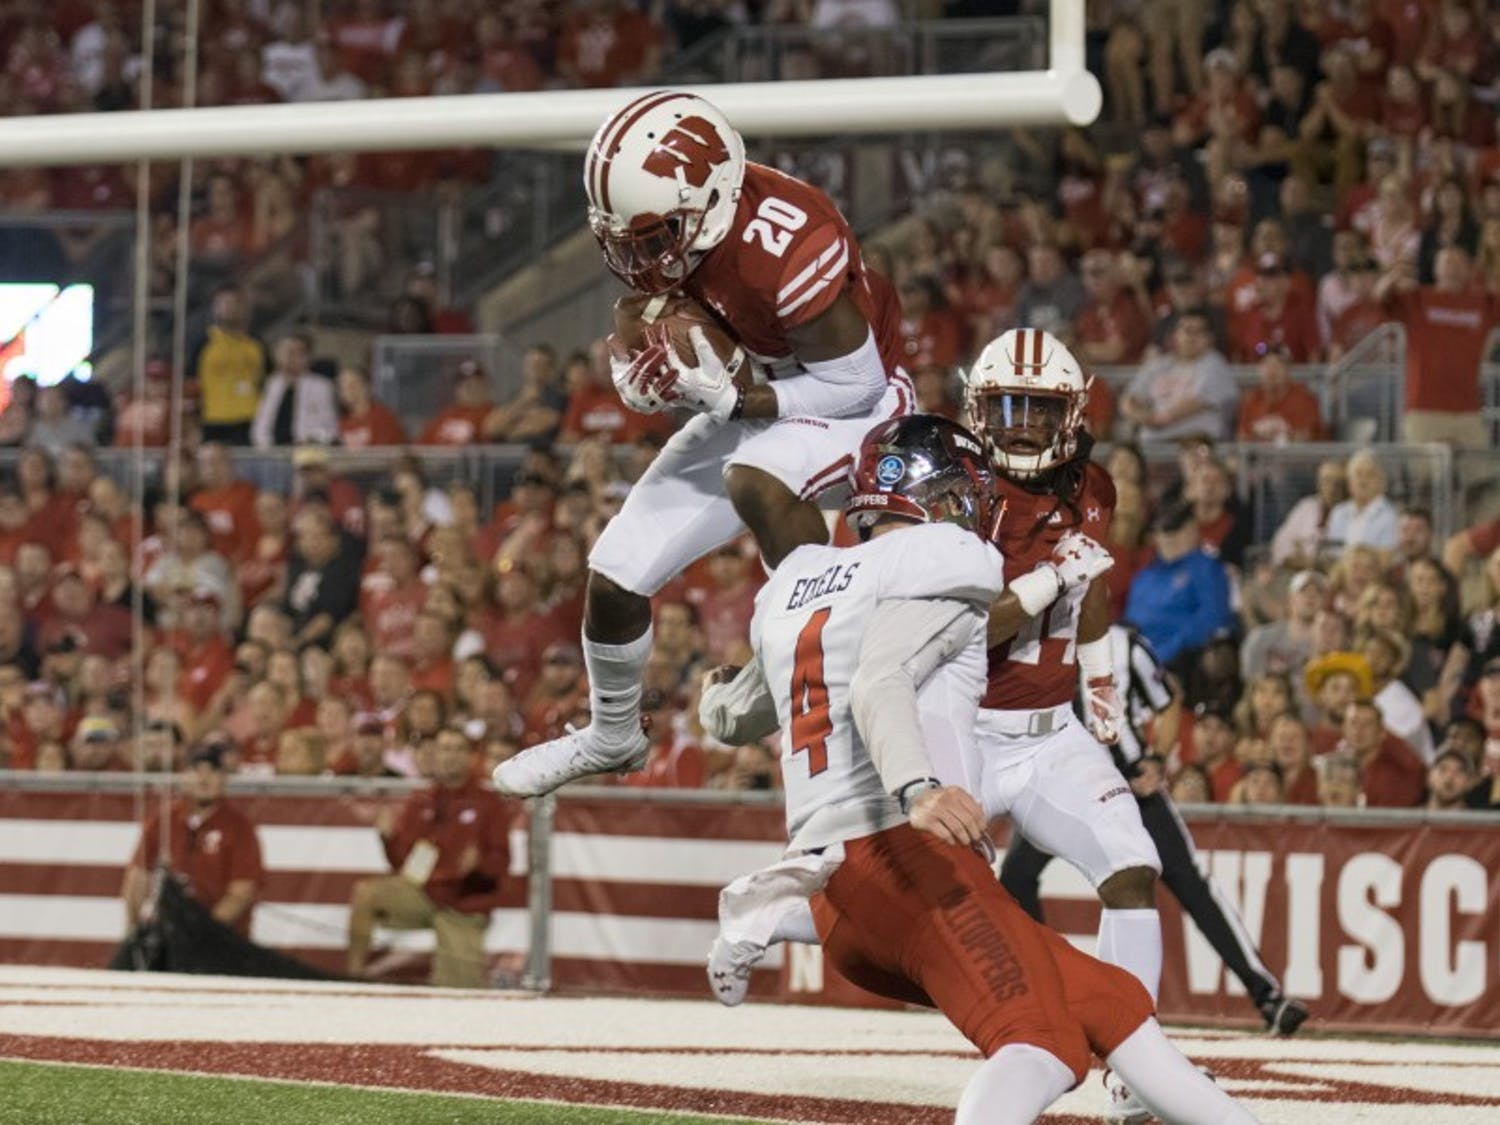 Sophomore cornerback Faion Hicks was one of the bright spots for Wisconsin in his freshman season, starting 11 games and recording four passes defended.